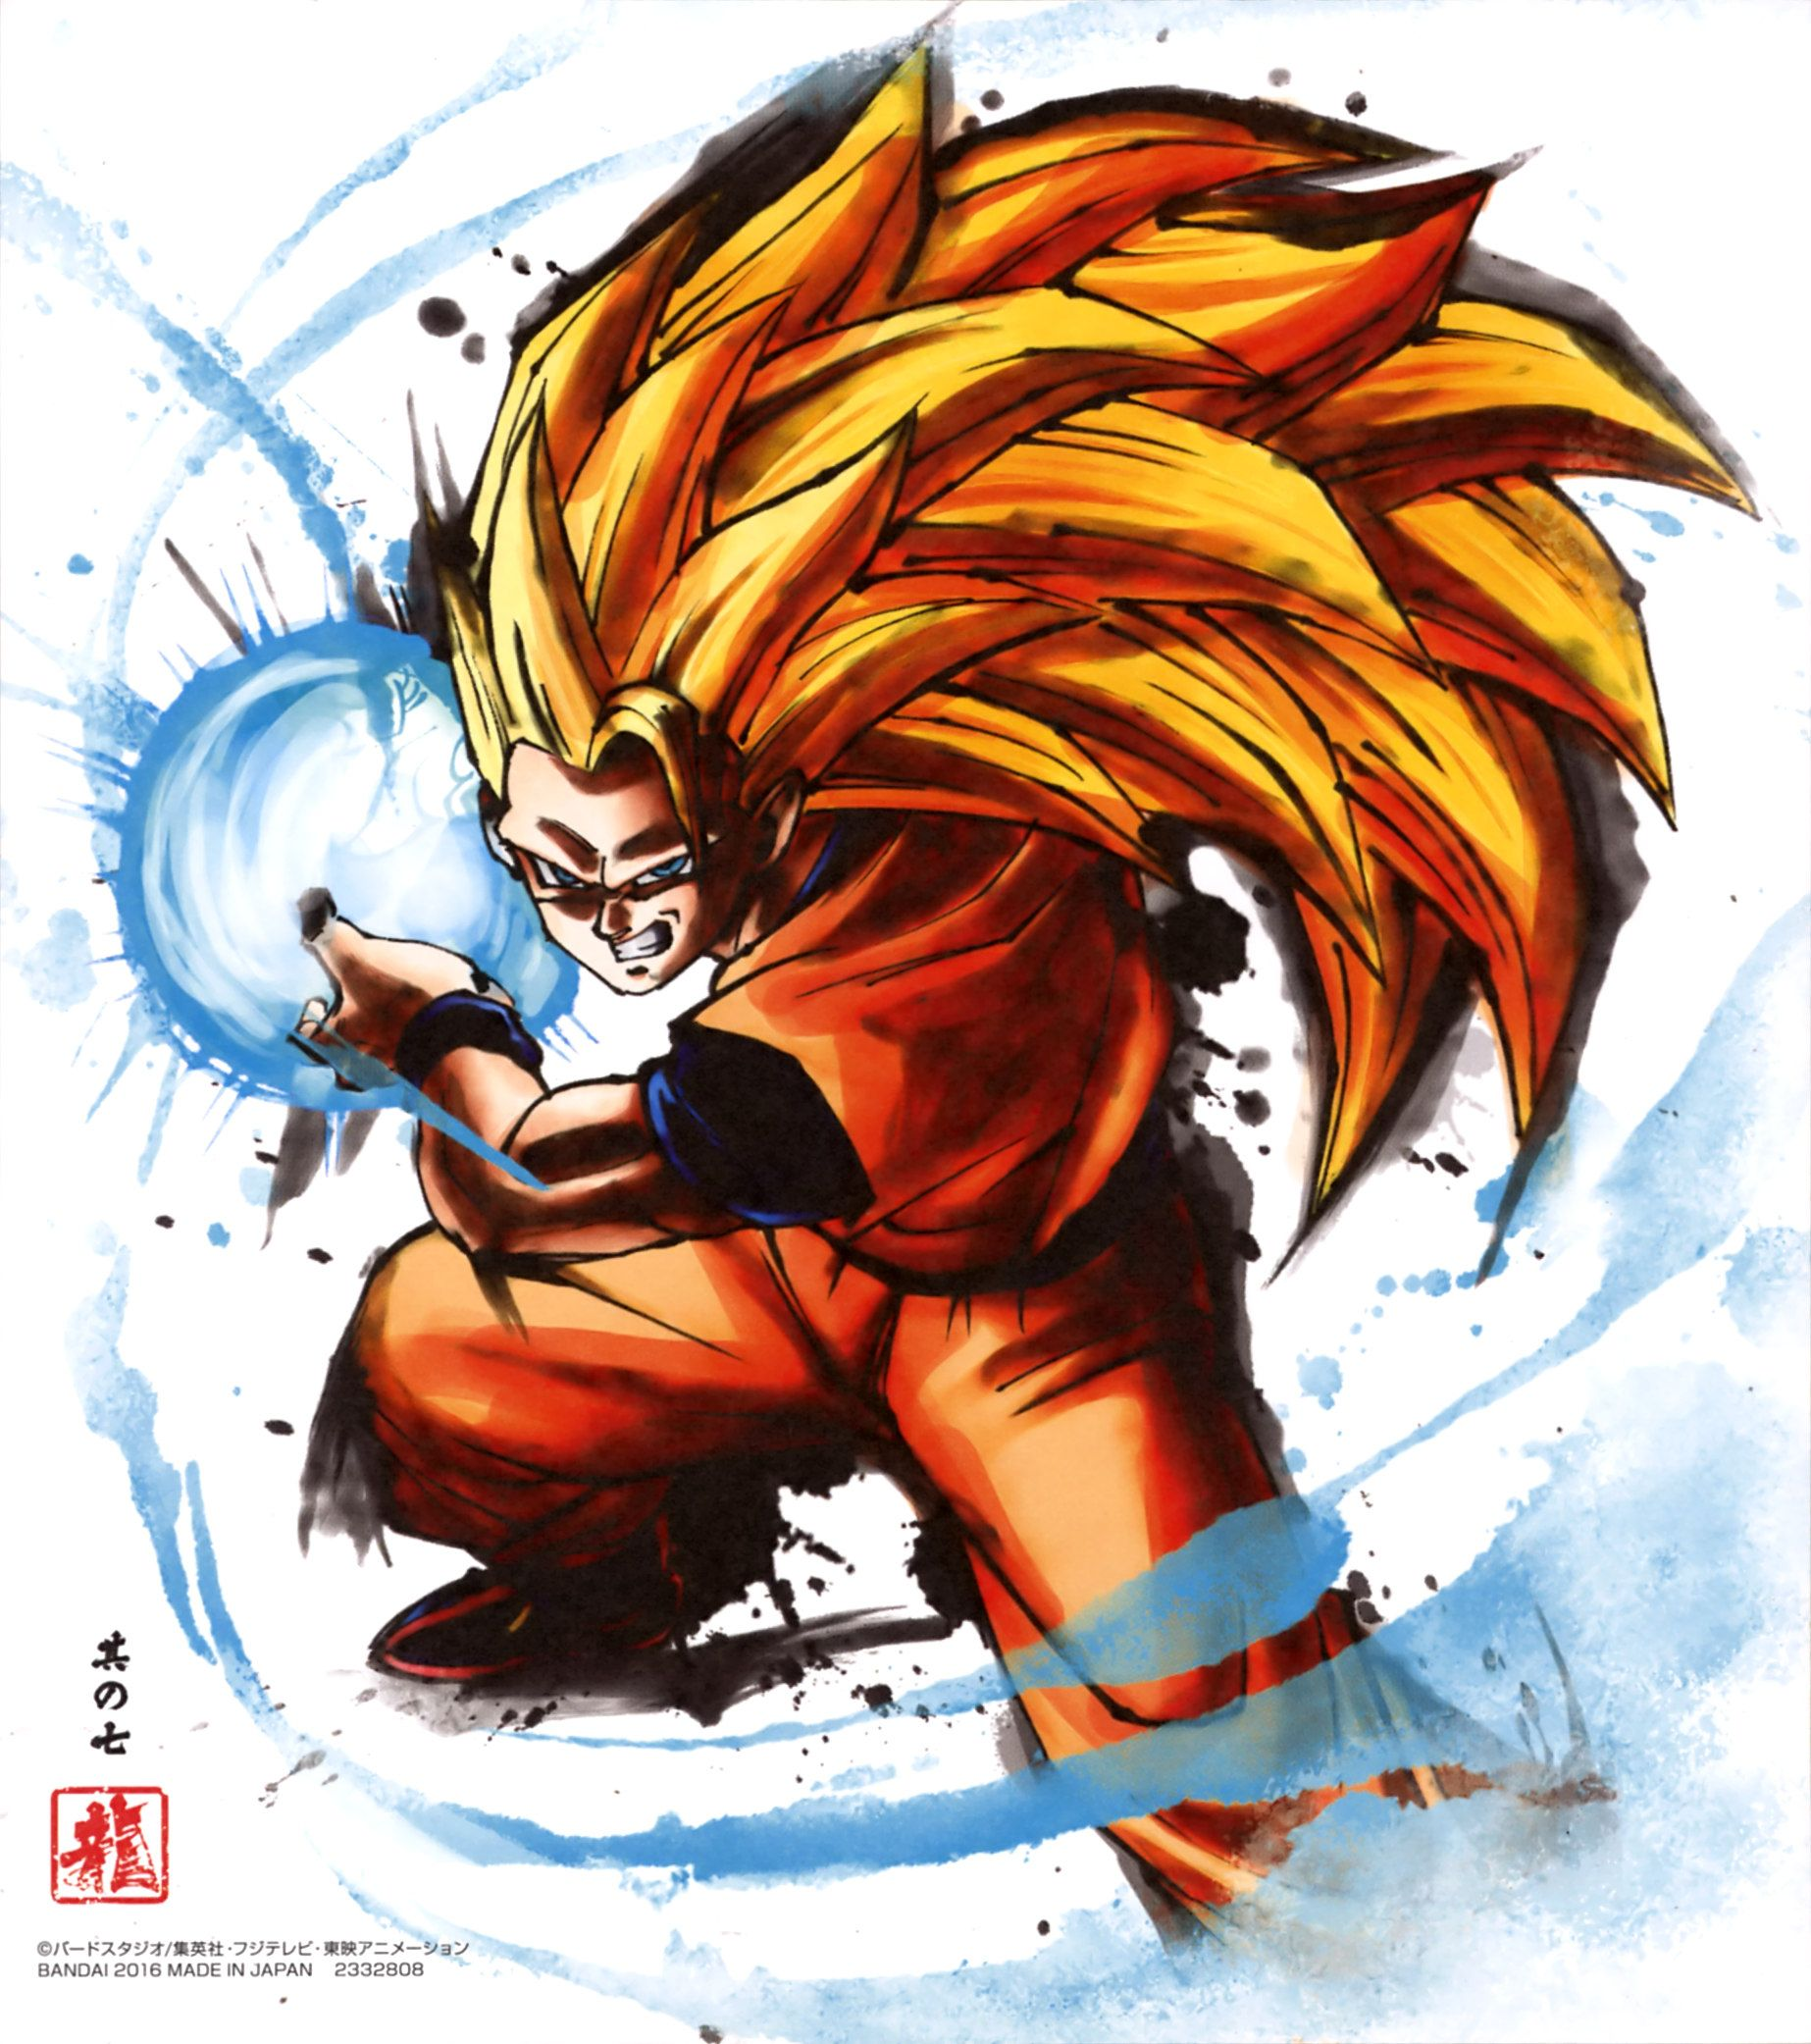 Akira toriyama toei animation dragon ball son goku - Dragon ball z goku son ...